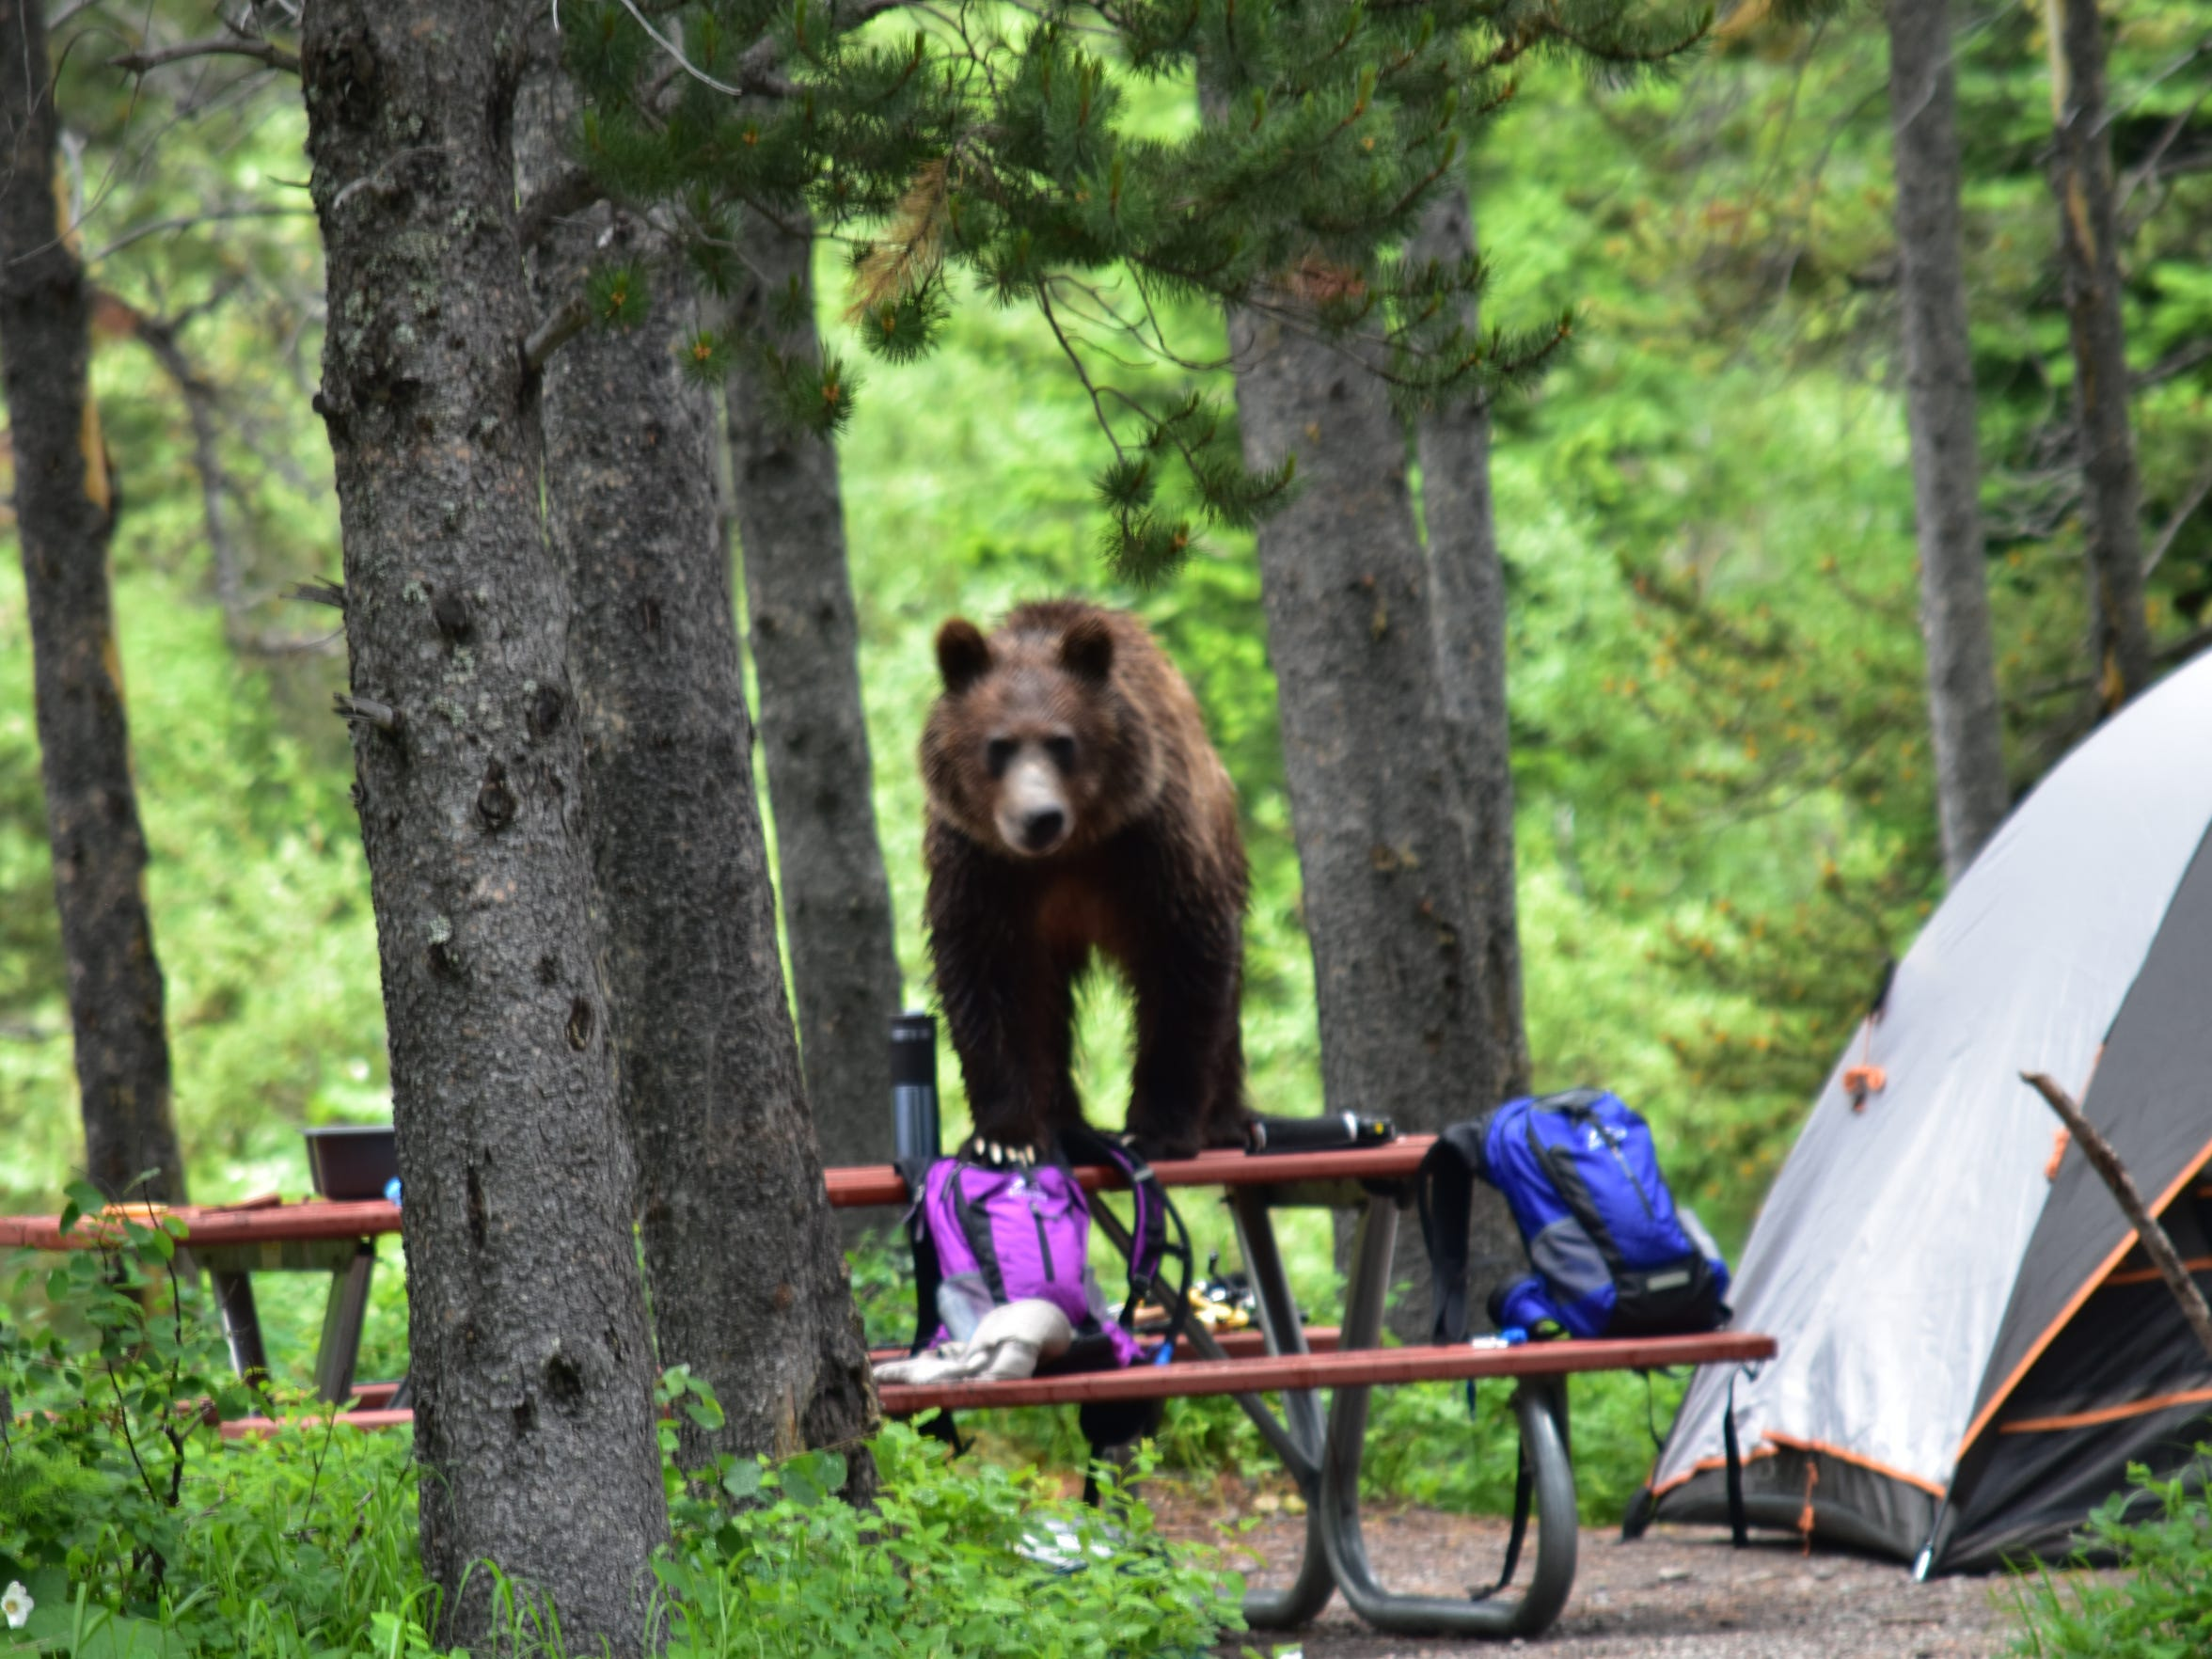 A grizzly climbed on top of a picnic table and consumed